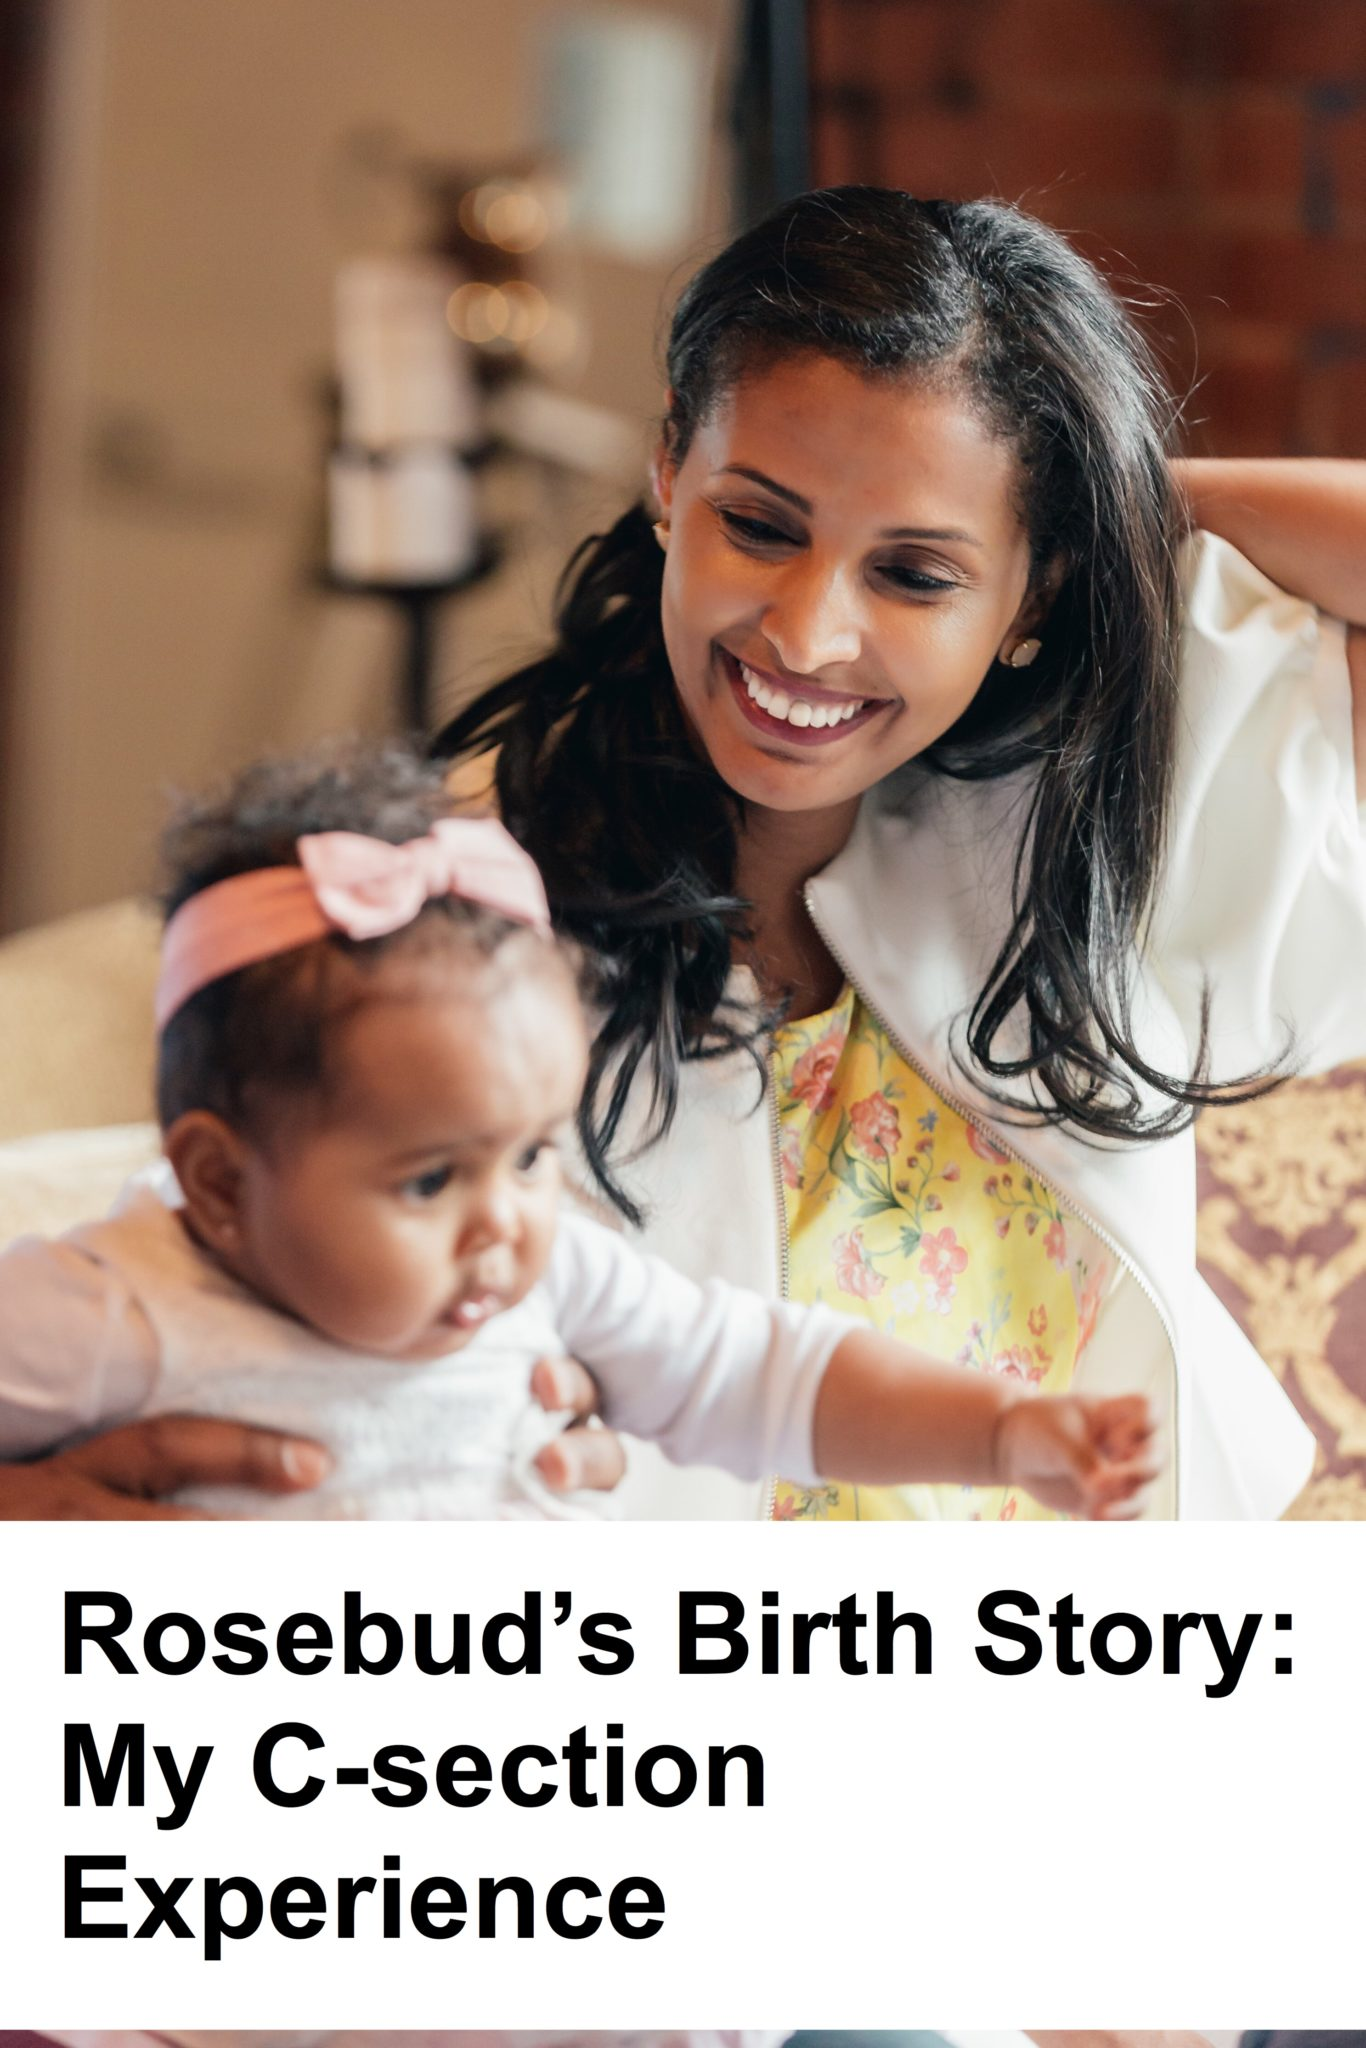 Rosebud's Birth Story: My C-section Experience